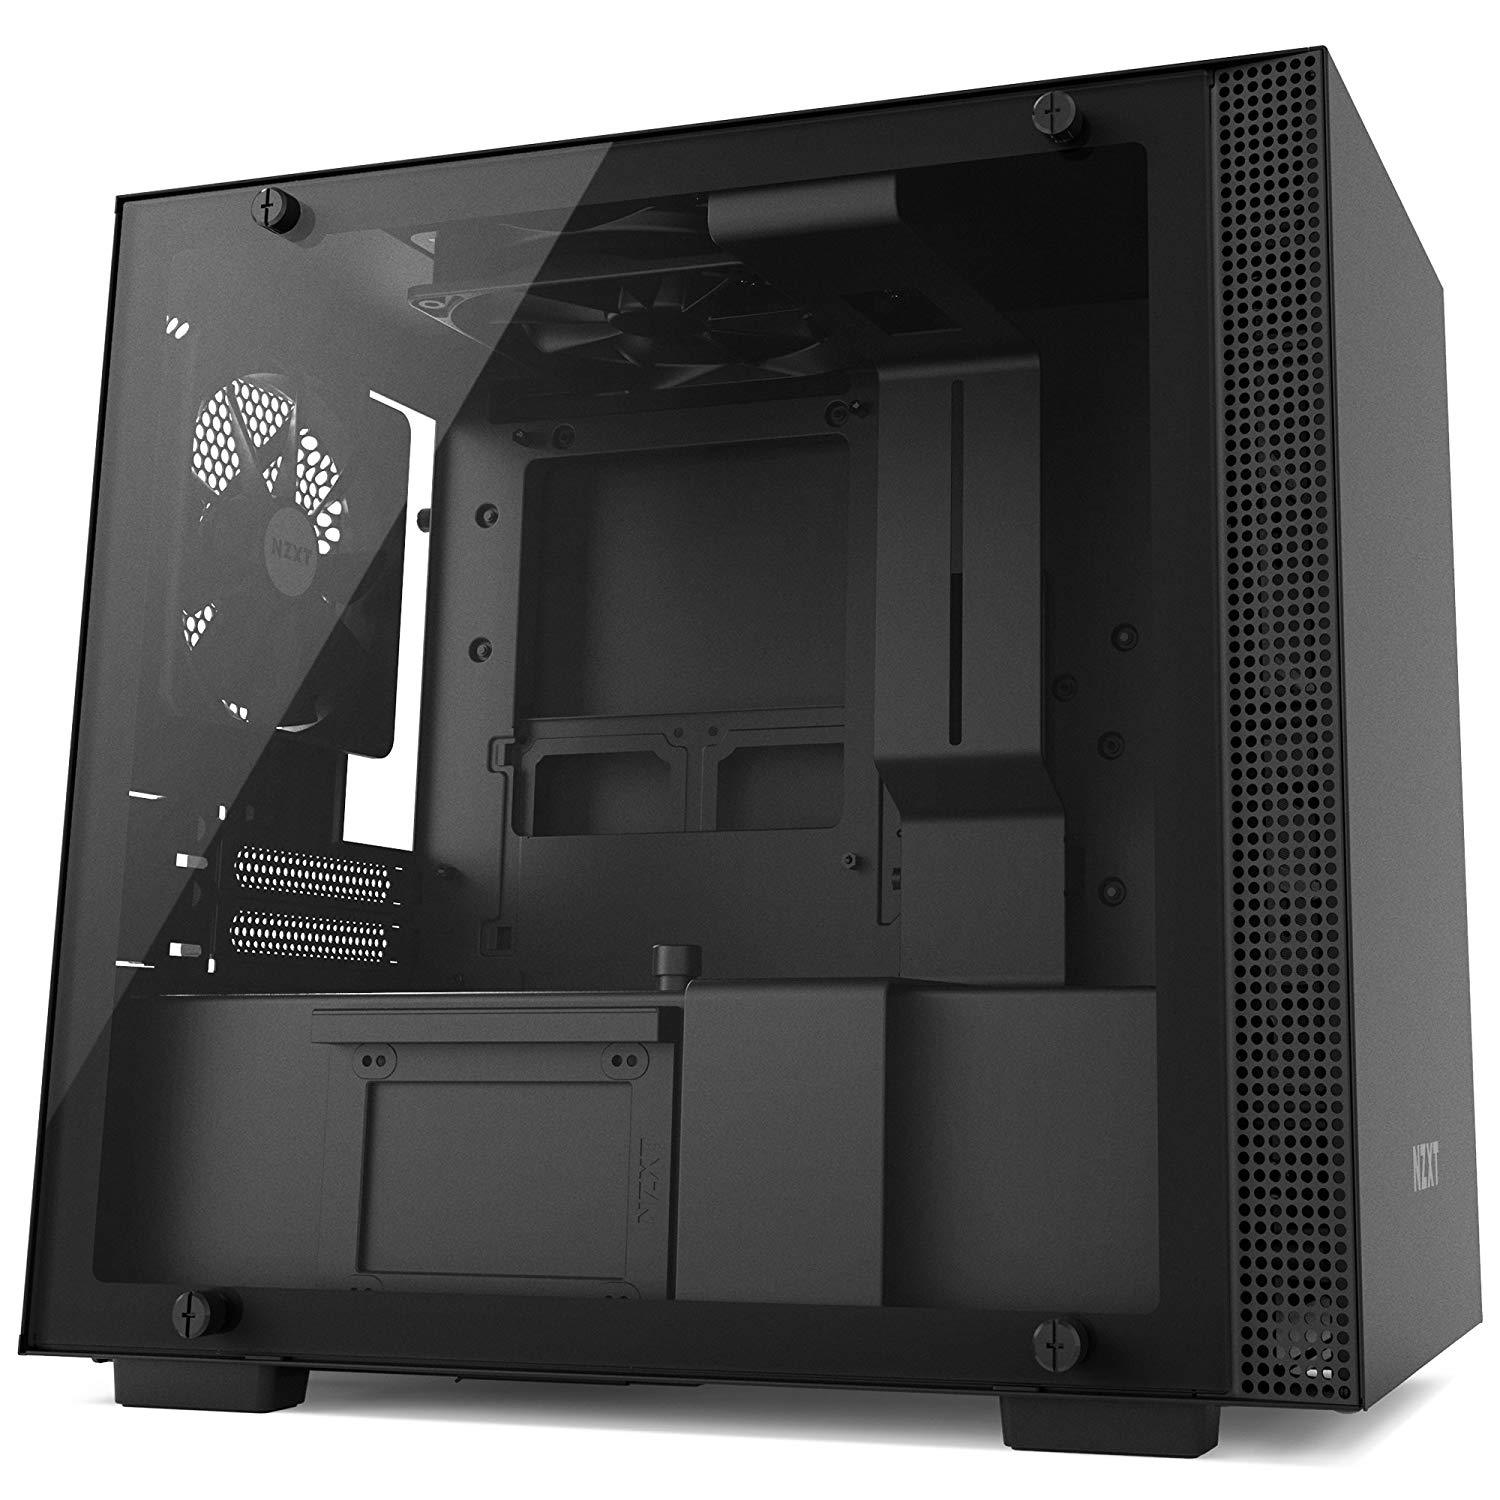 NZXT H200 Mini ITX Mini Tower Case - Black - Store 974 | ستور ٩٧٤